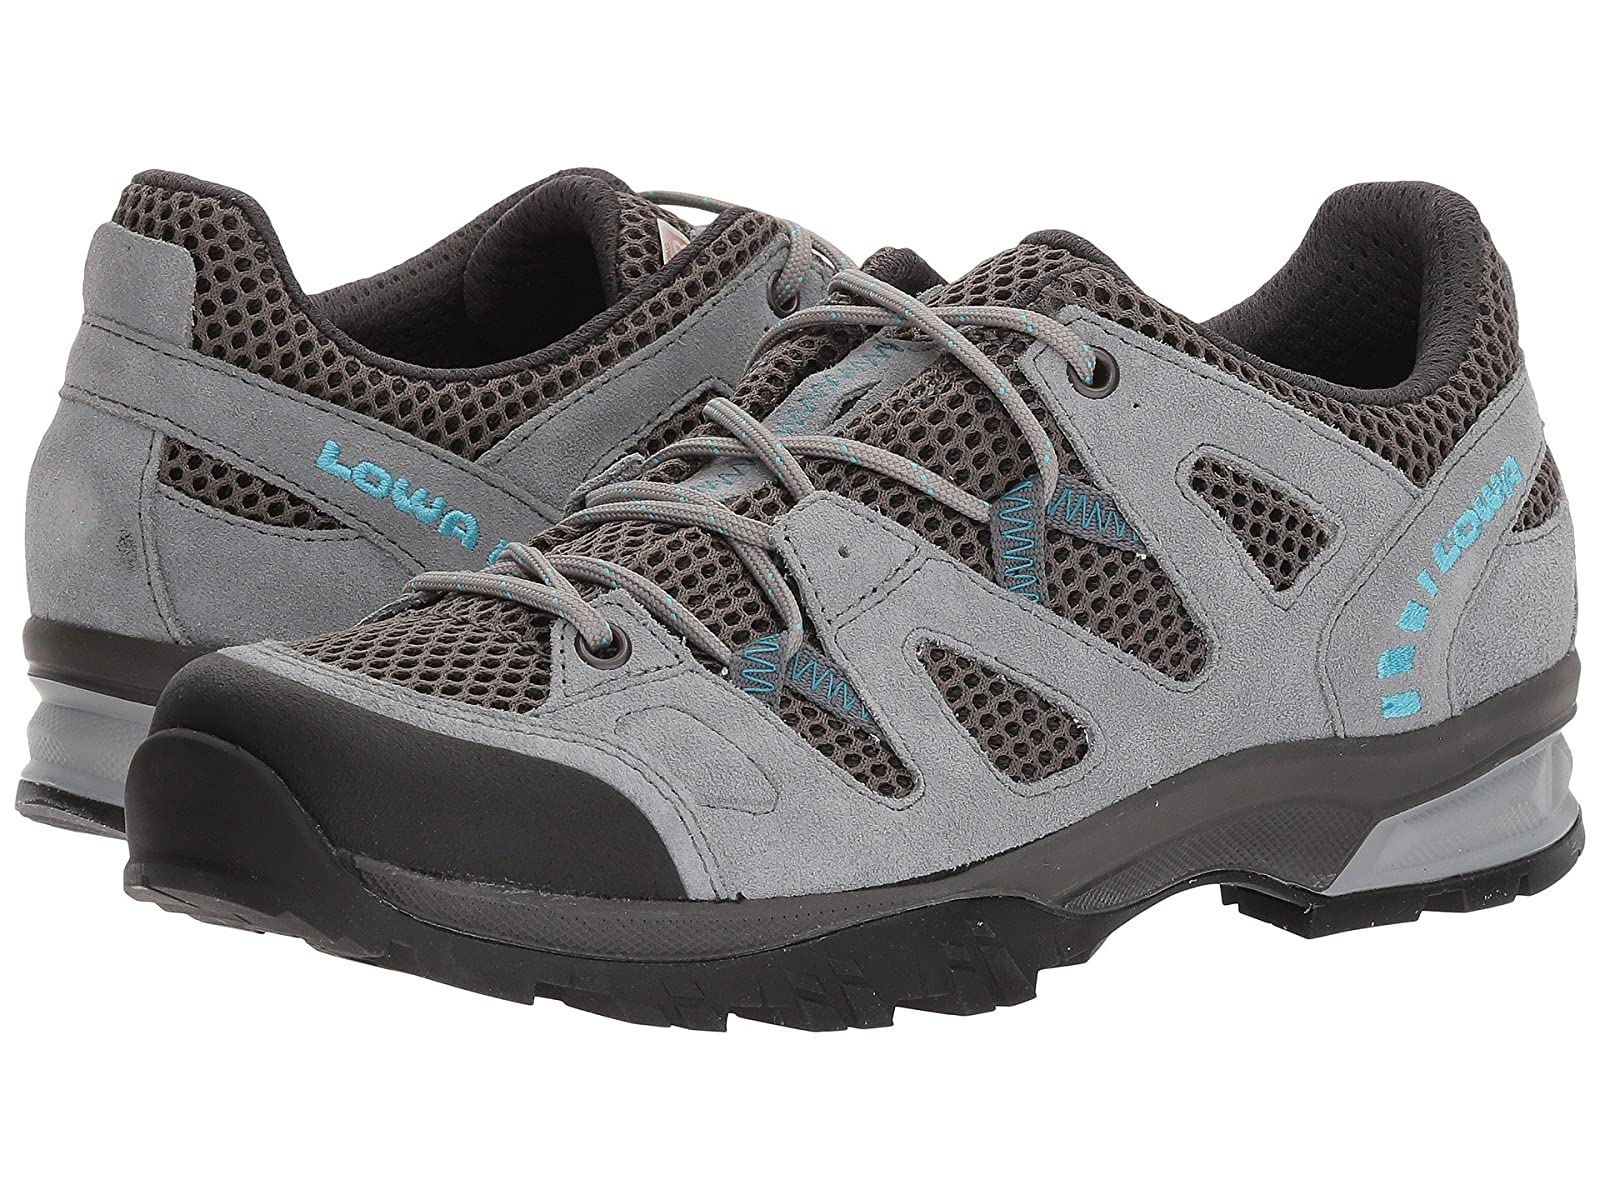 Lowa Phoenix Mesh LoAtmospheric grades have affordable shoes